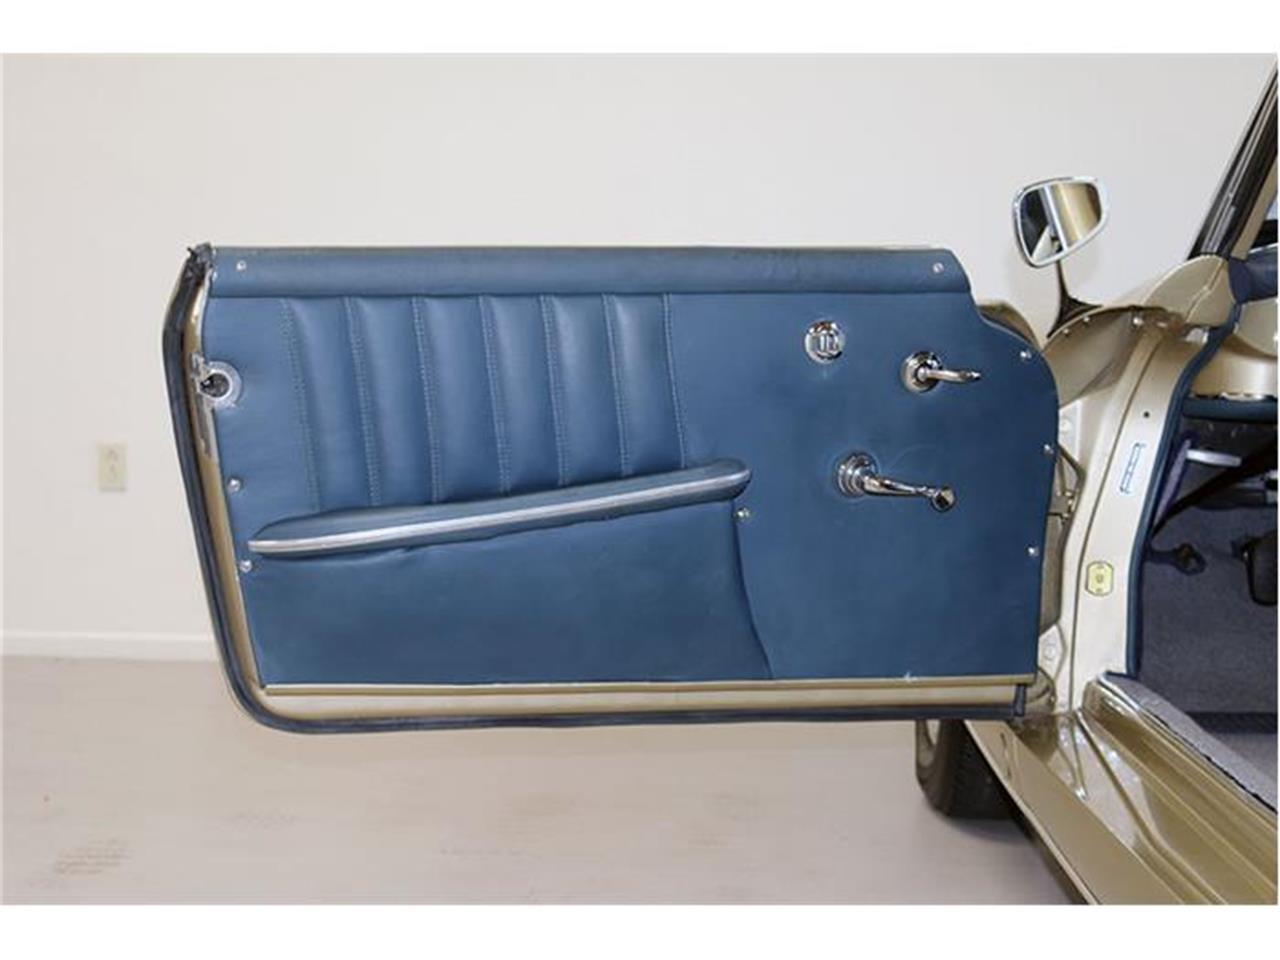 Large Picture of Classic '58 Mercedes-Benz 190SL located in Fallbrook California Auction Vehicle - F45J